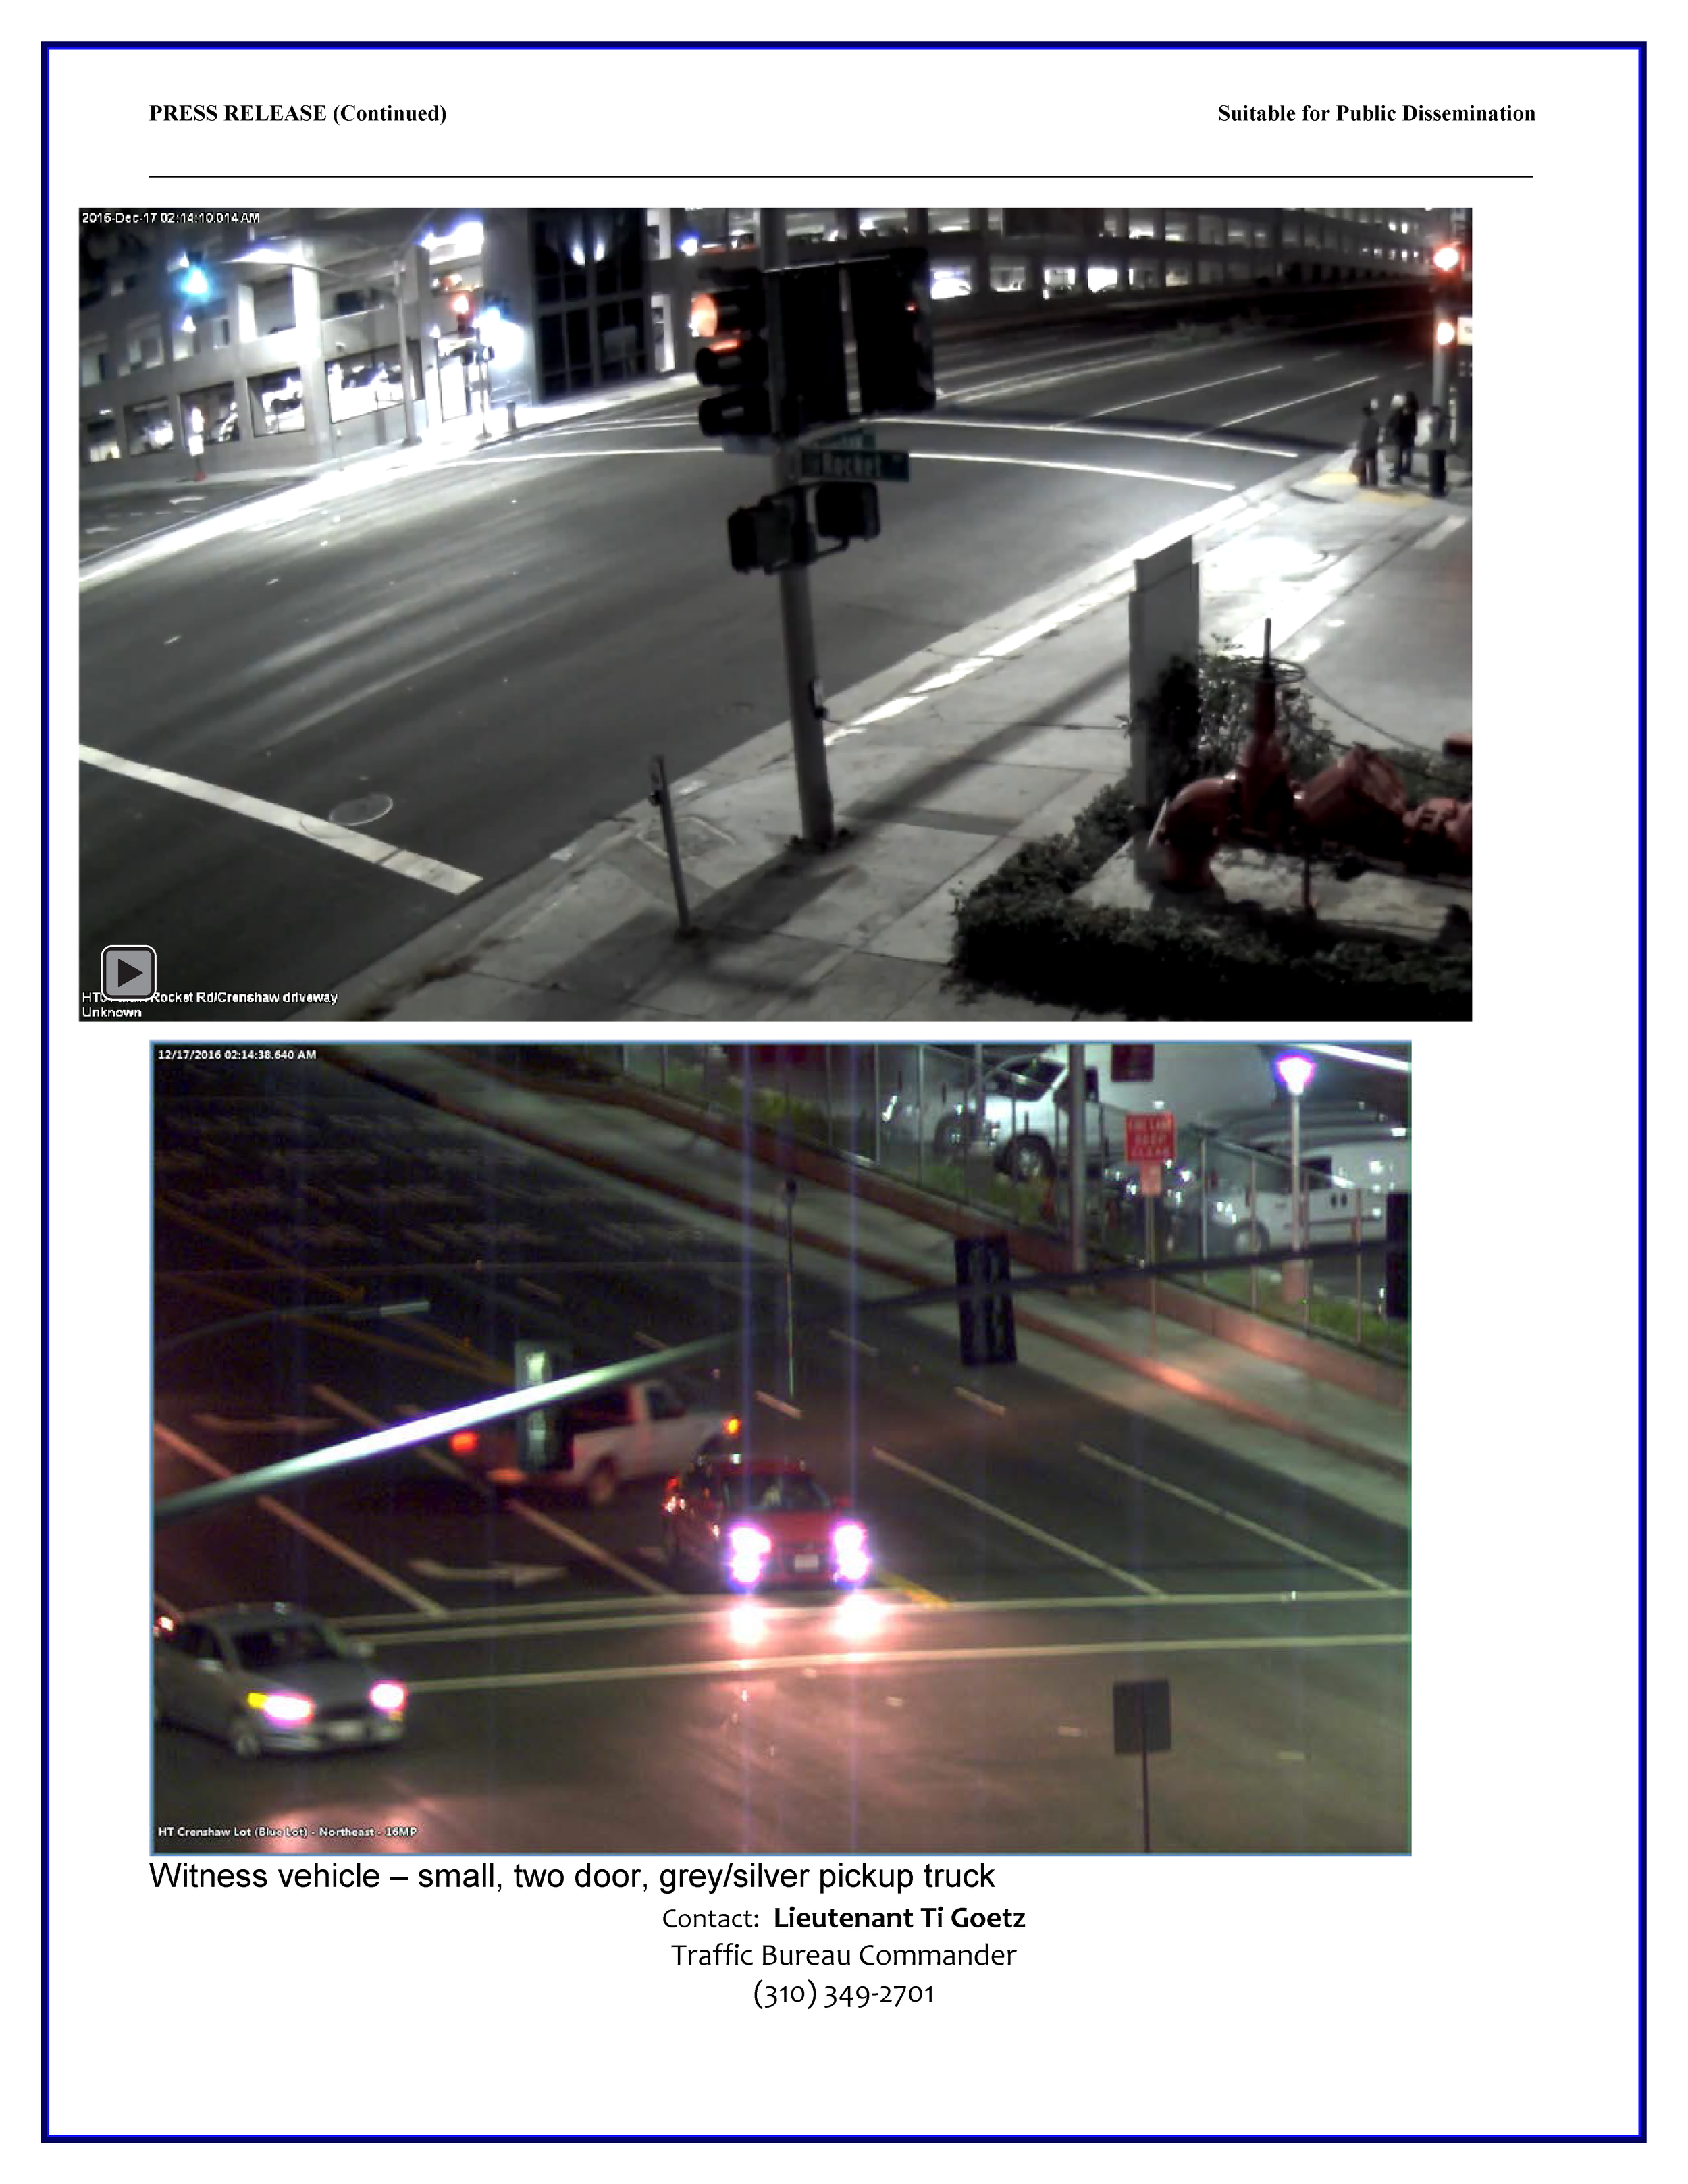 hit and run crosswalk press release_Page_2.png